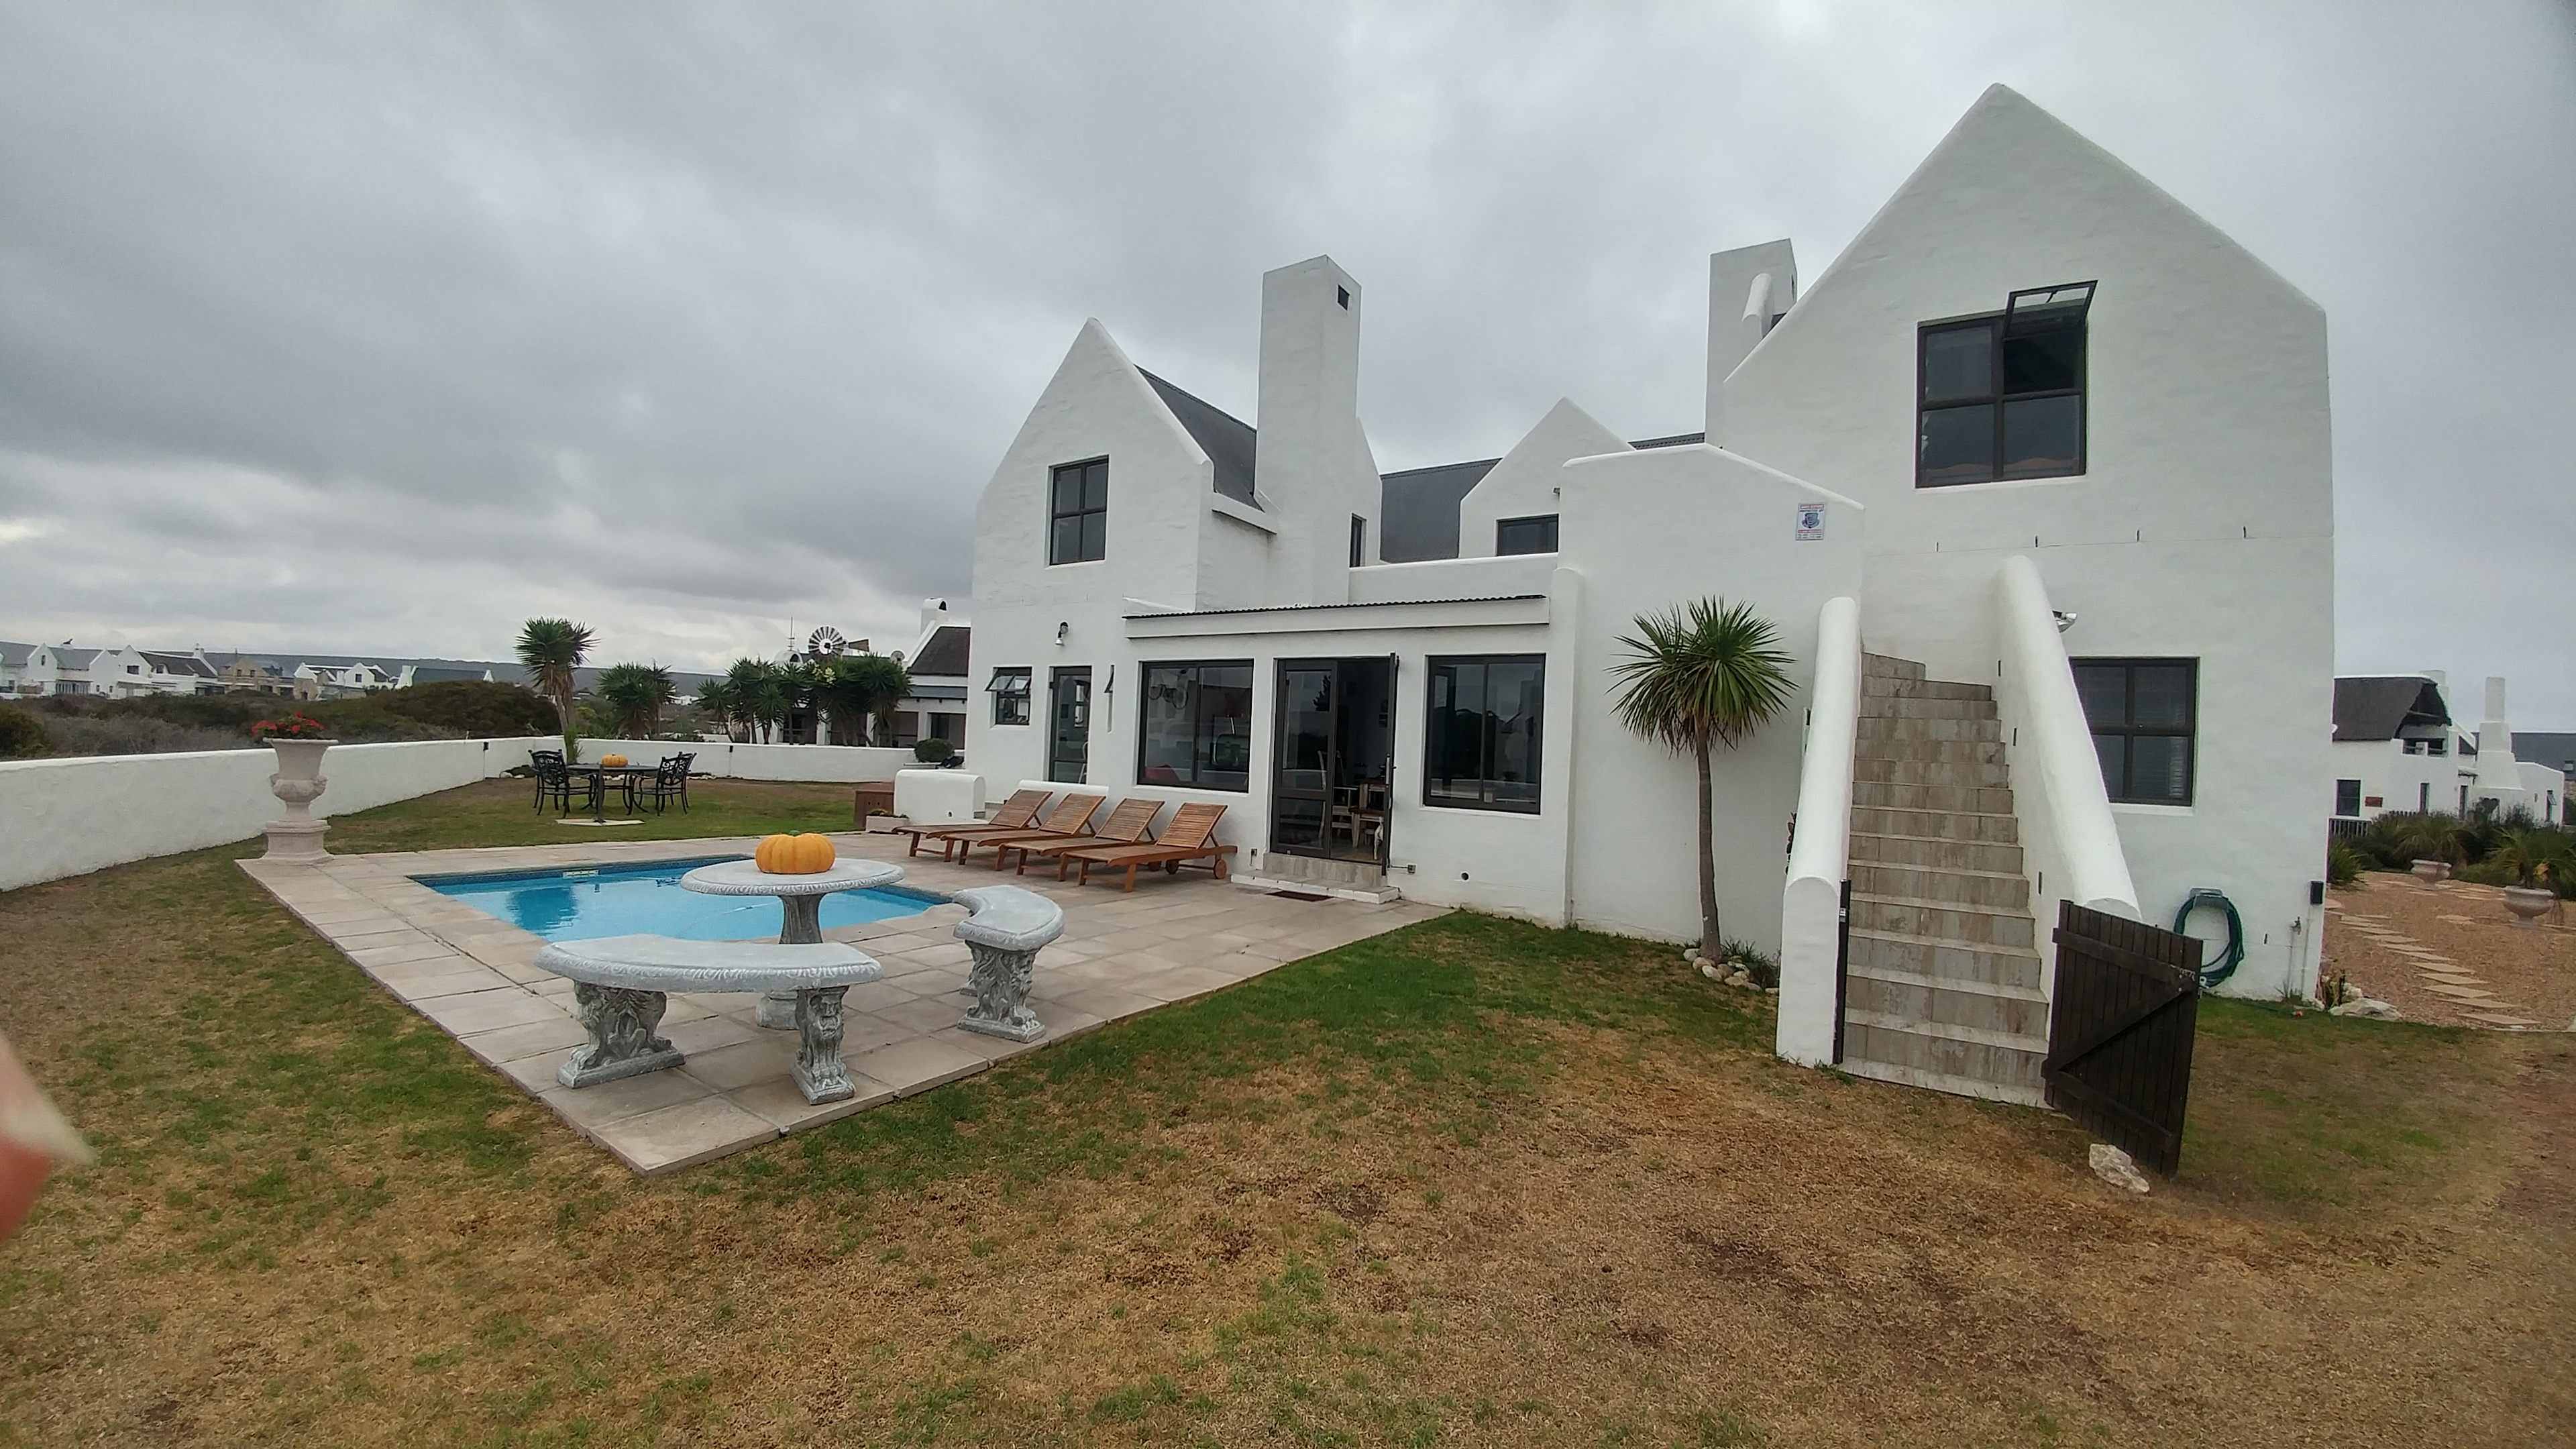 227 Immaculate Neat Home With Swimming Pool